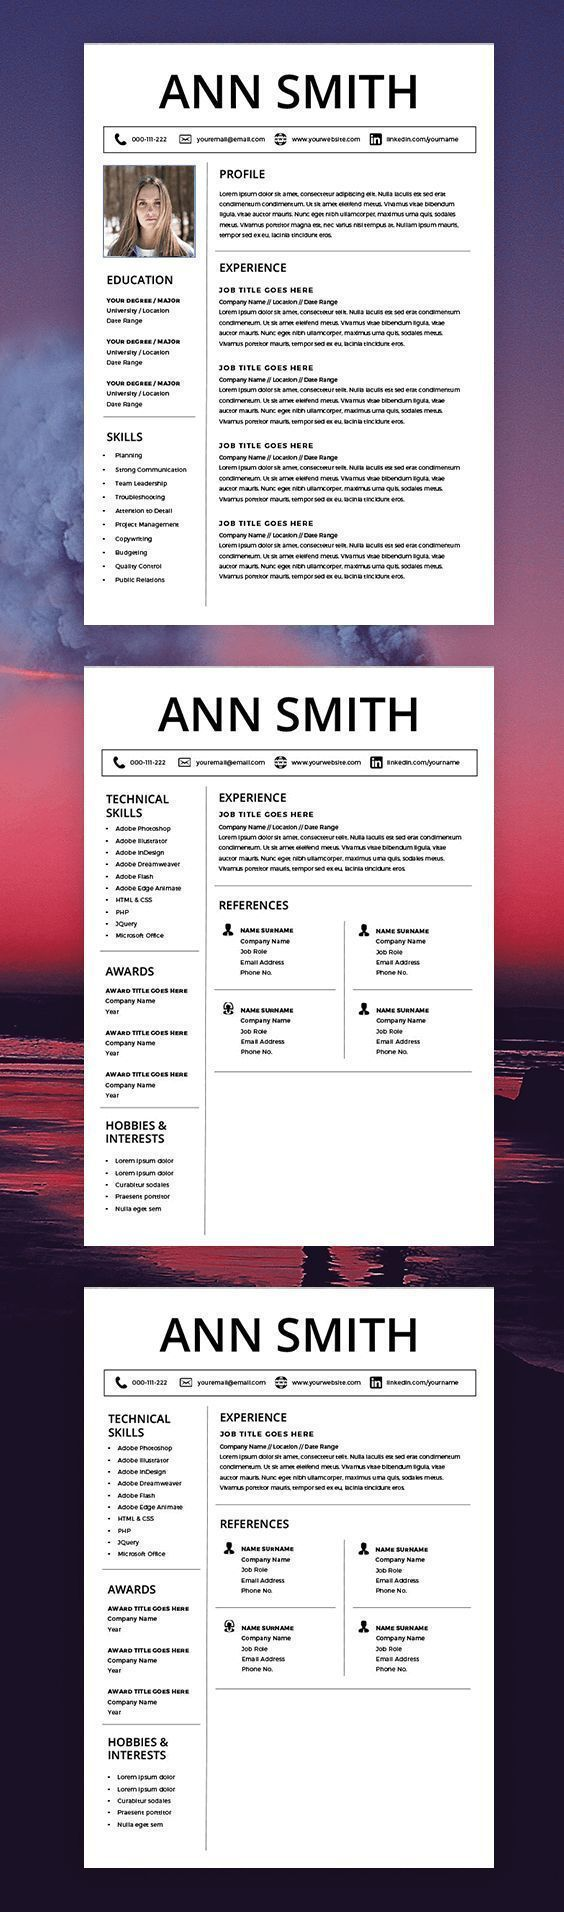 Curriculum Vitae Template - CV Template - Cover Letter - MS Word Mac ...